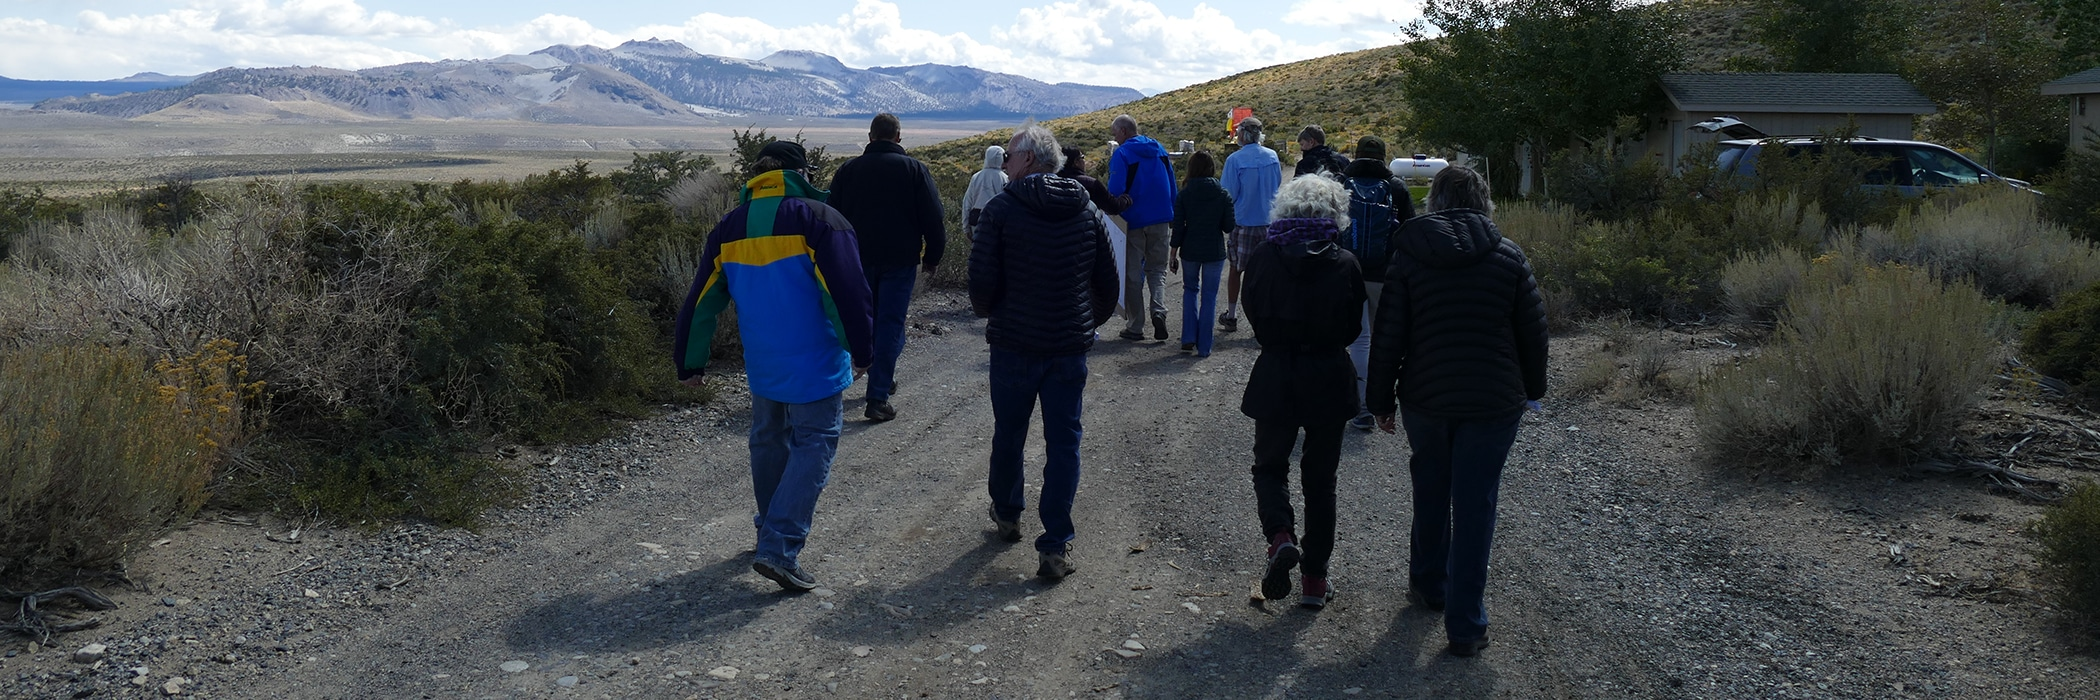 A group of people walk away from the camera down a gravel road through light green and darker green sagebrush. The Sierra Nevadas sit in a cloudy sky.